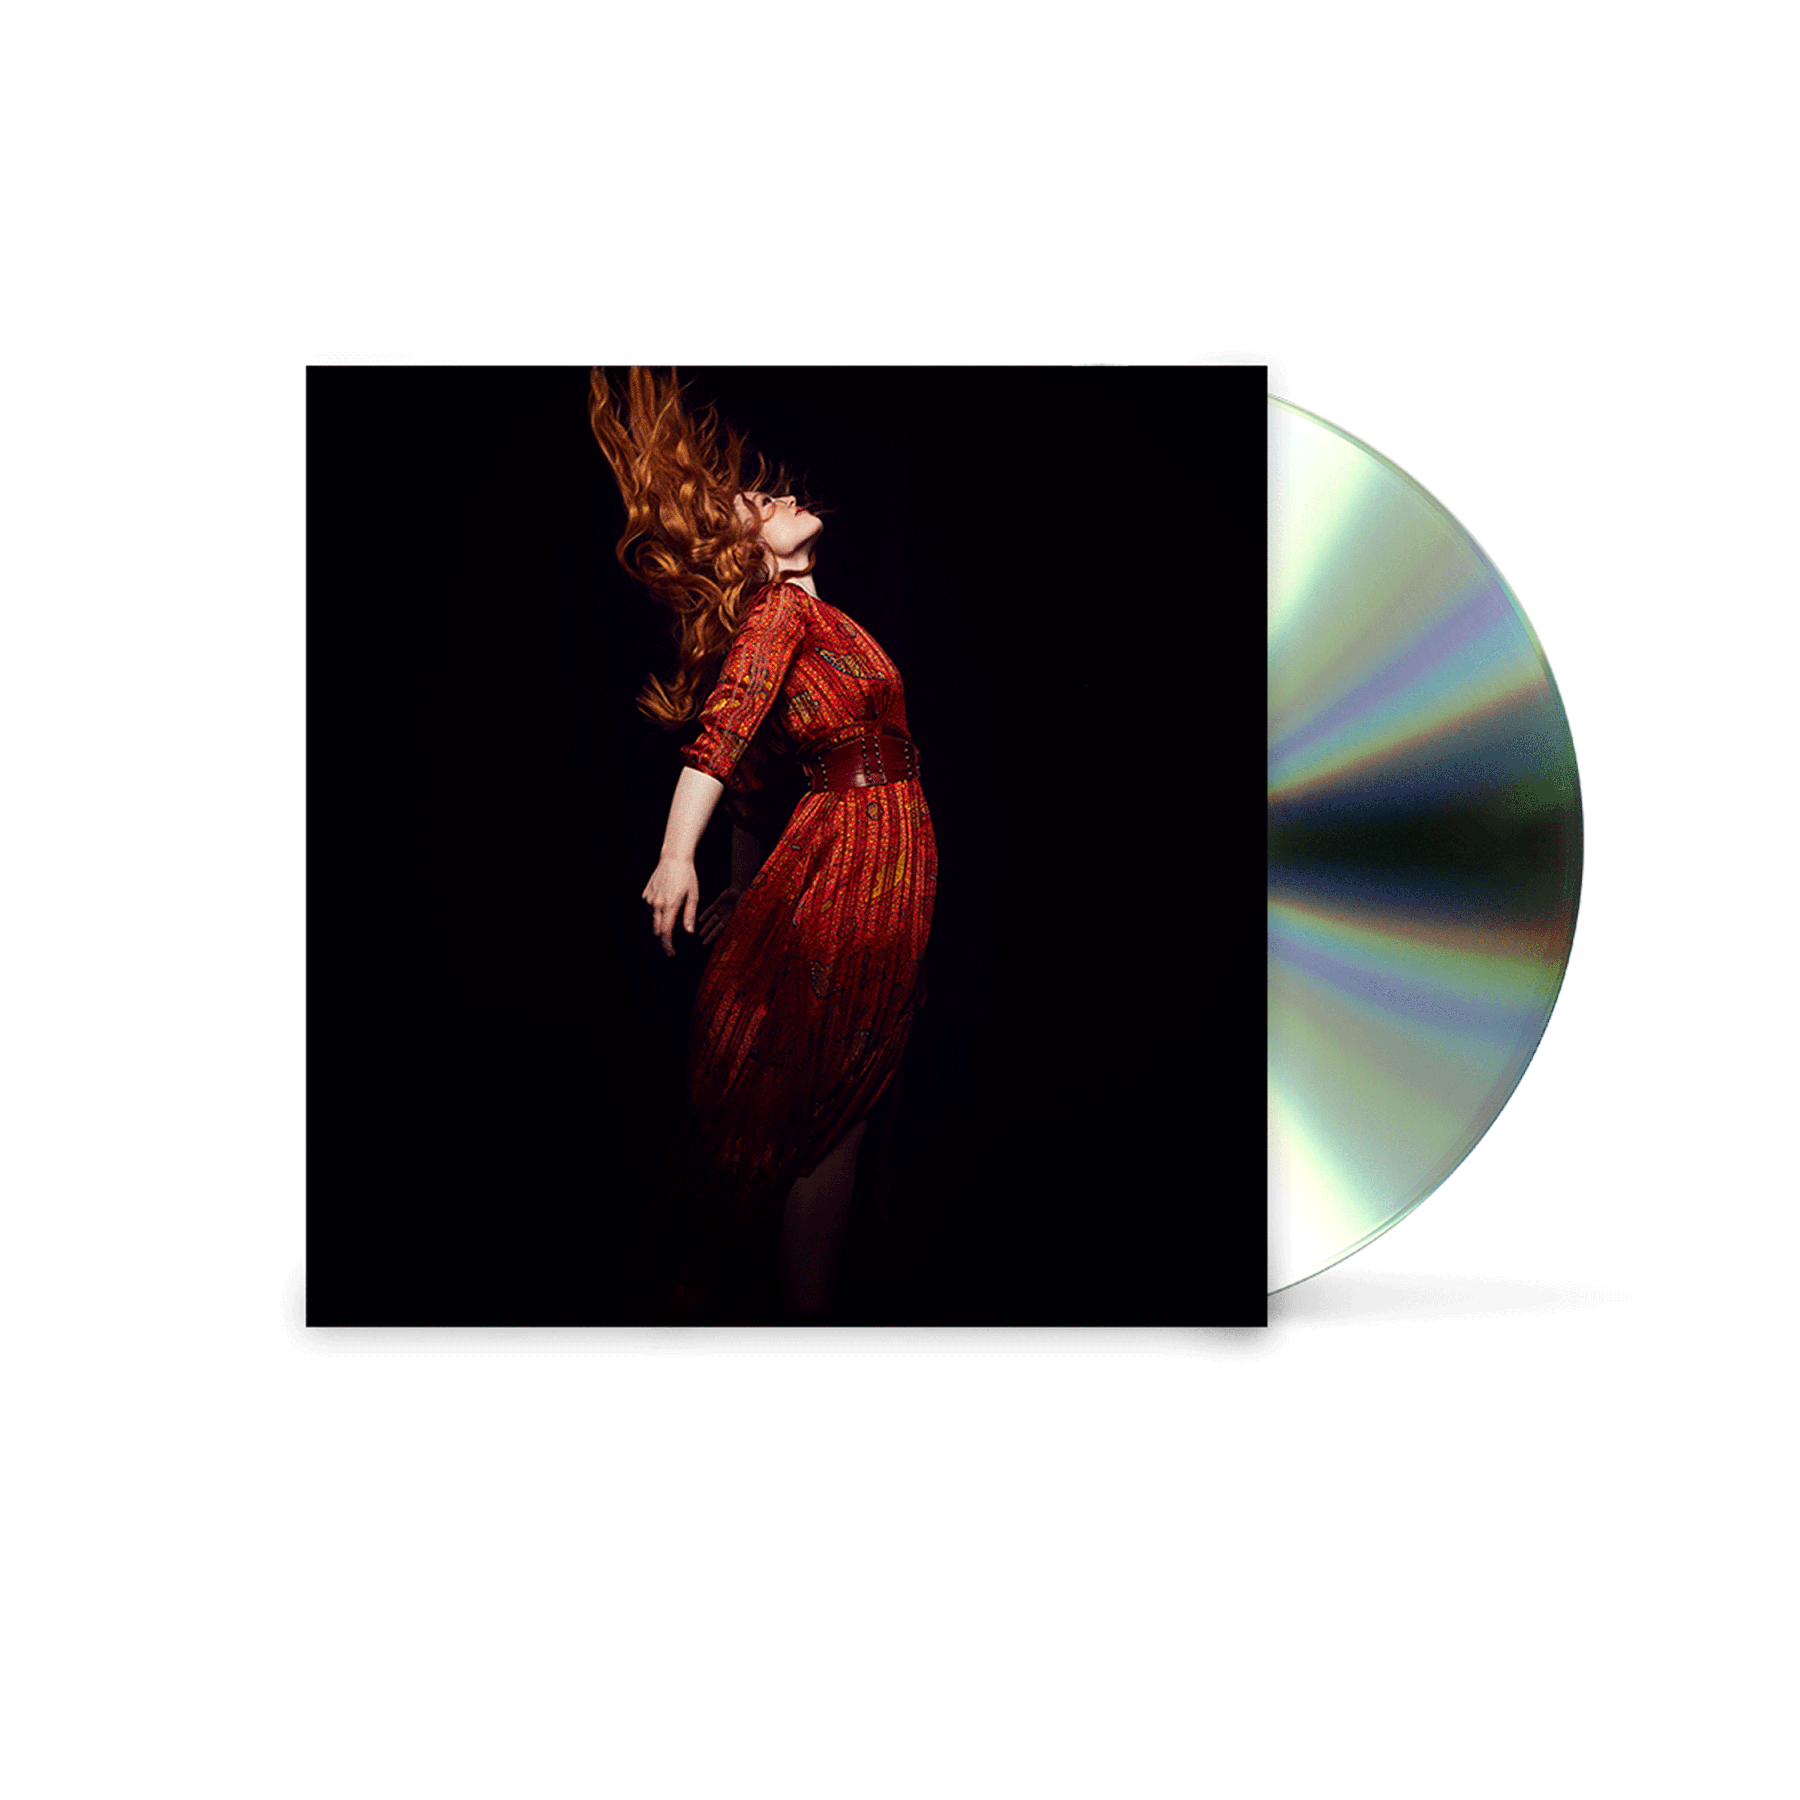 Freya Ridings - Debut Album [CD] (Pre-Order)